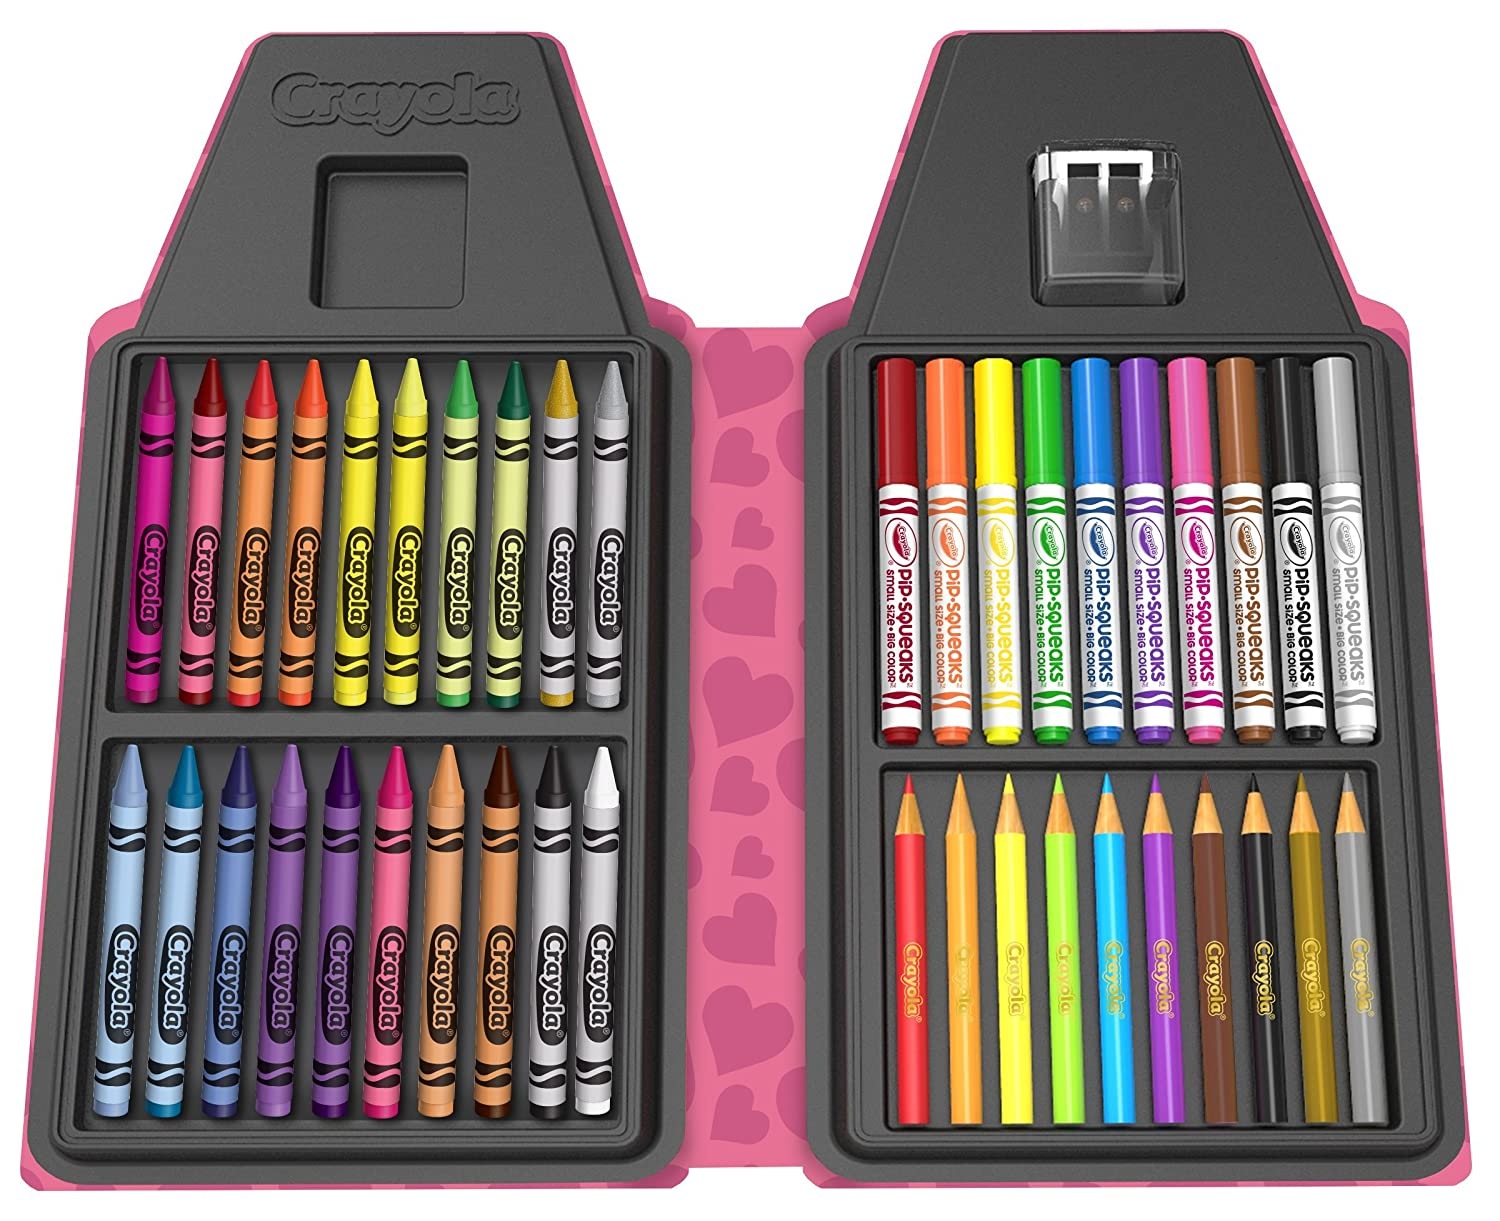 40 Art Tools and Paper Tickle Me Pink Crayola Tip Tool Kit Tip Character Case Makes a Great Gift Binney /& Smith 04-6900